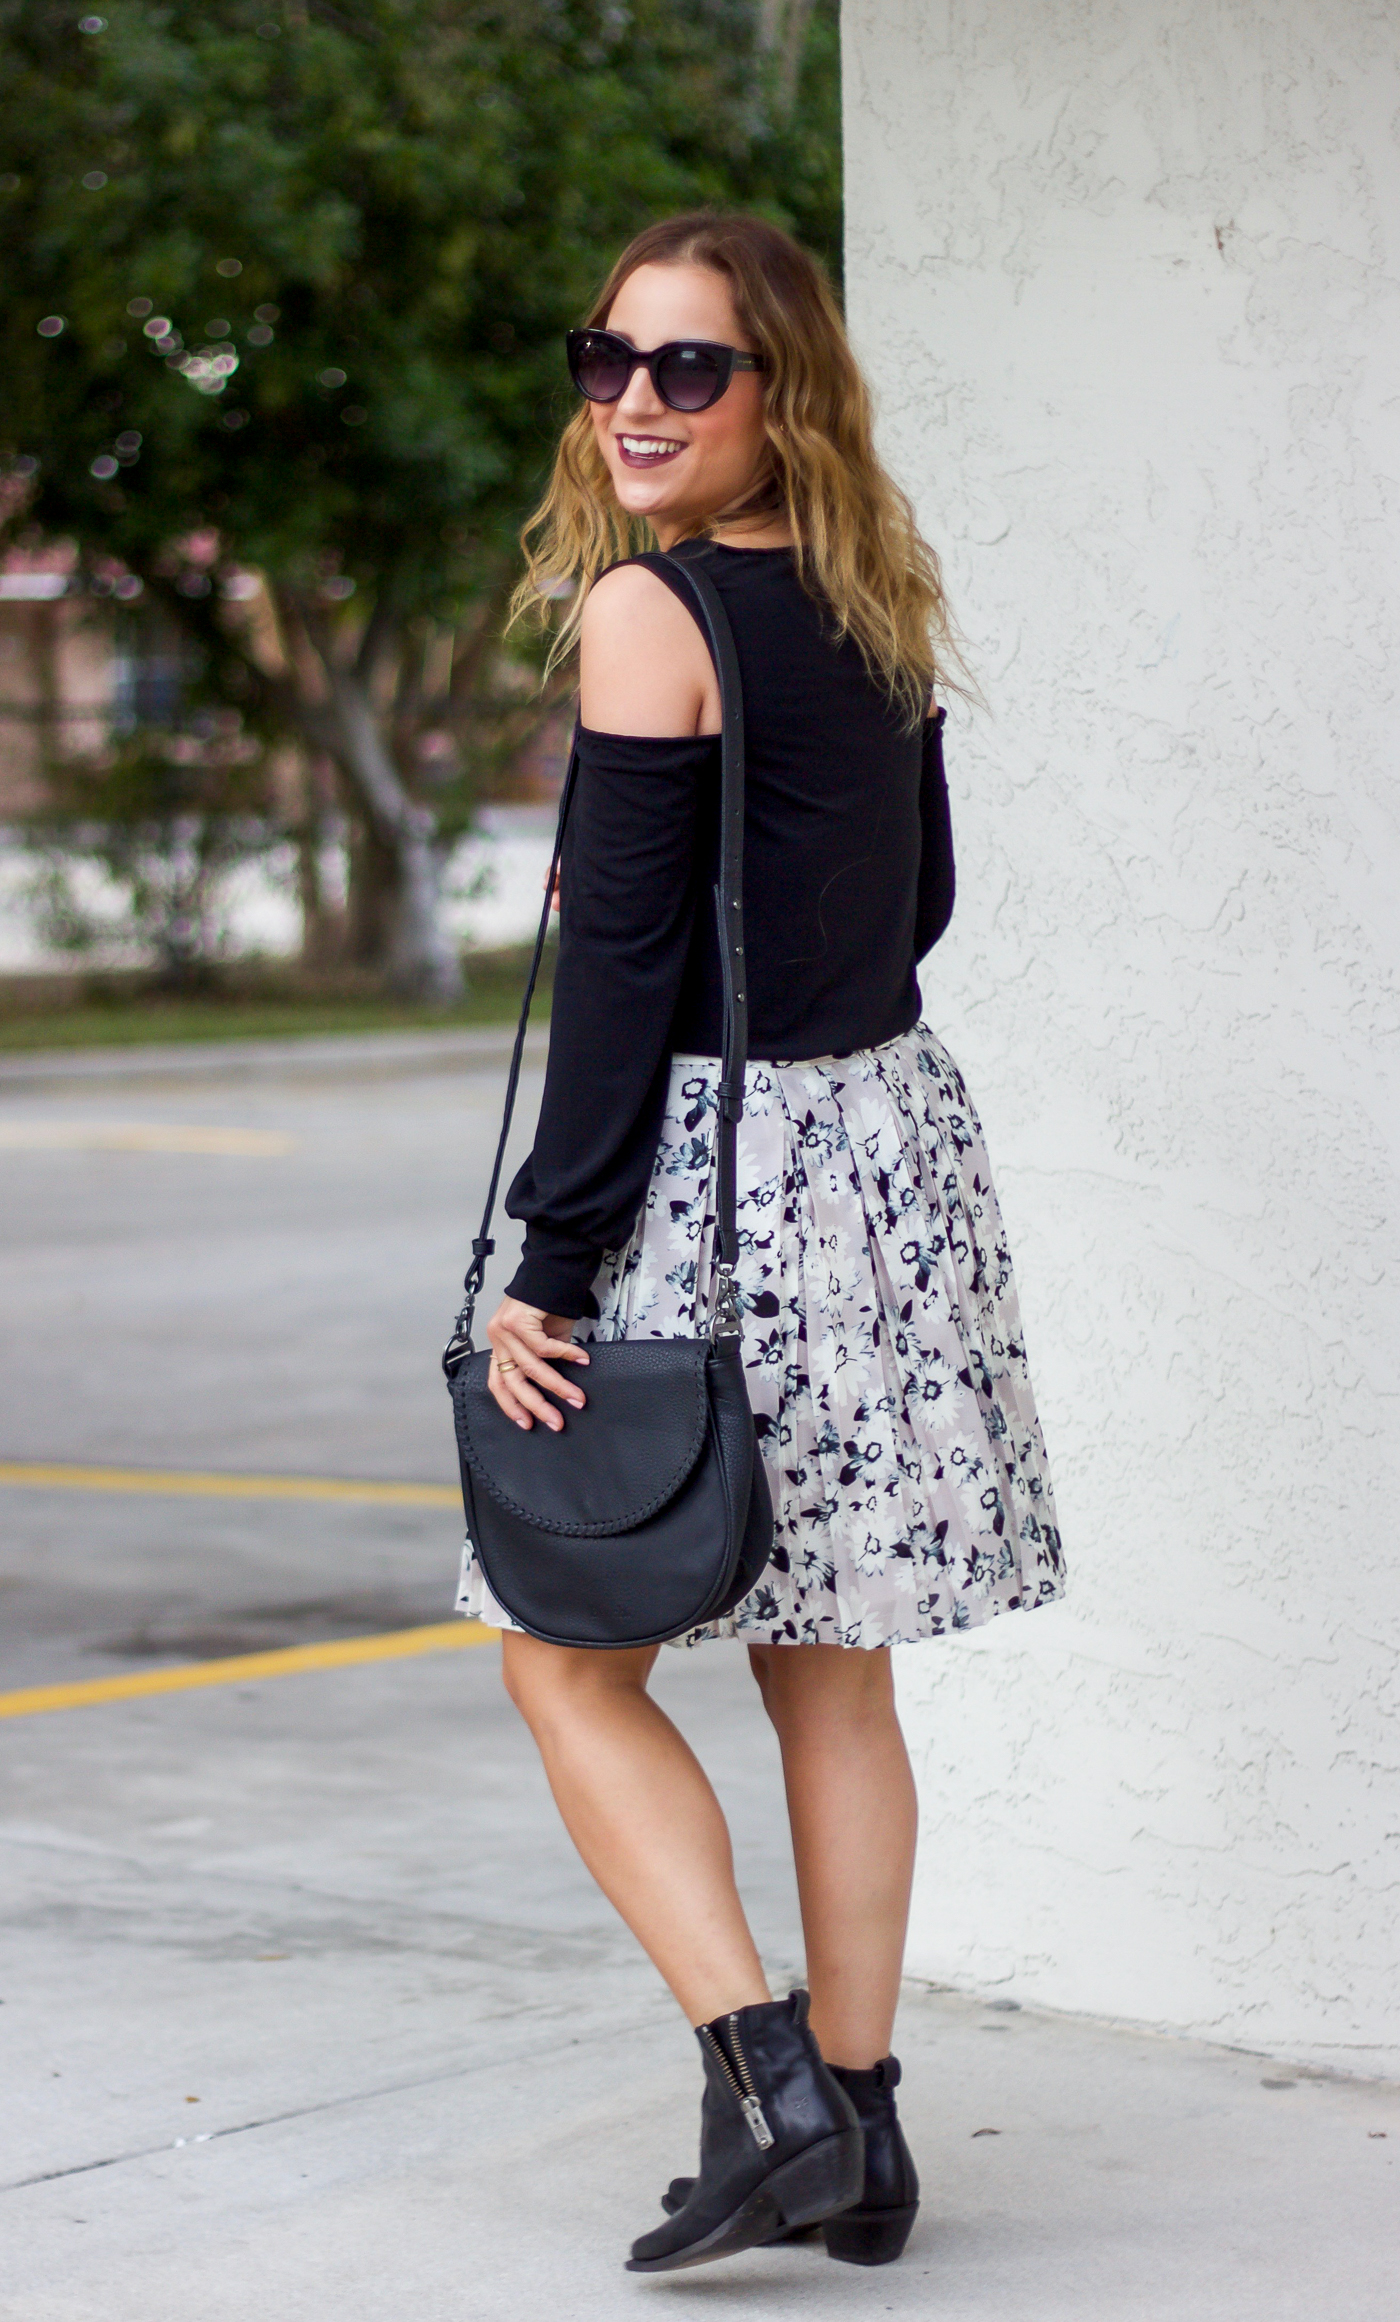 Canadian fashion blogger wearing a shirt from Express and a skirt from Banana Republic